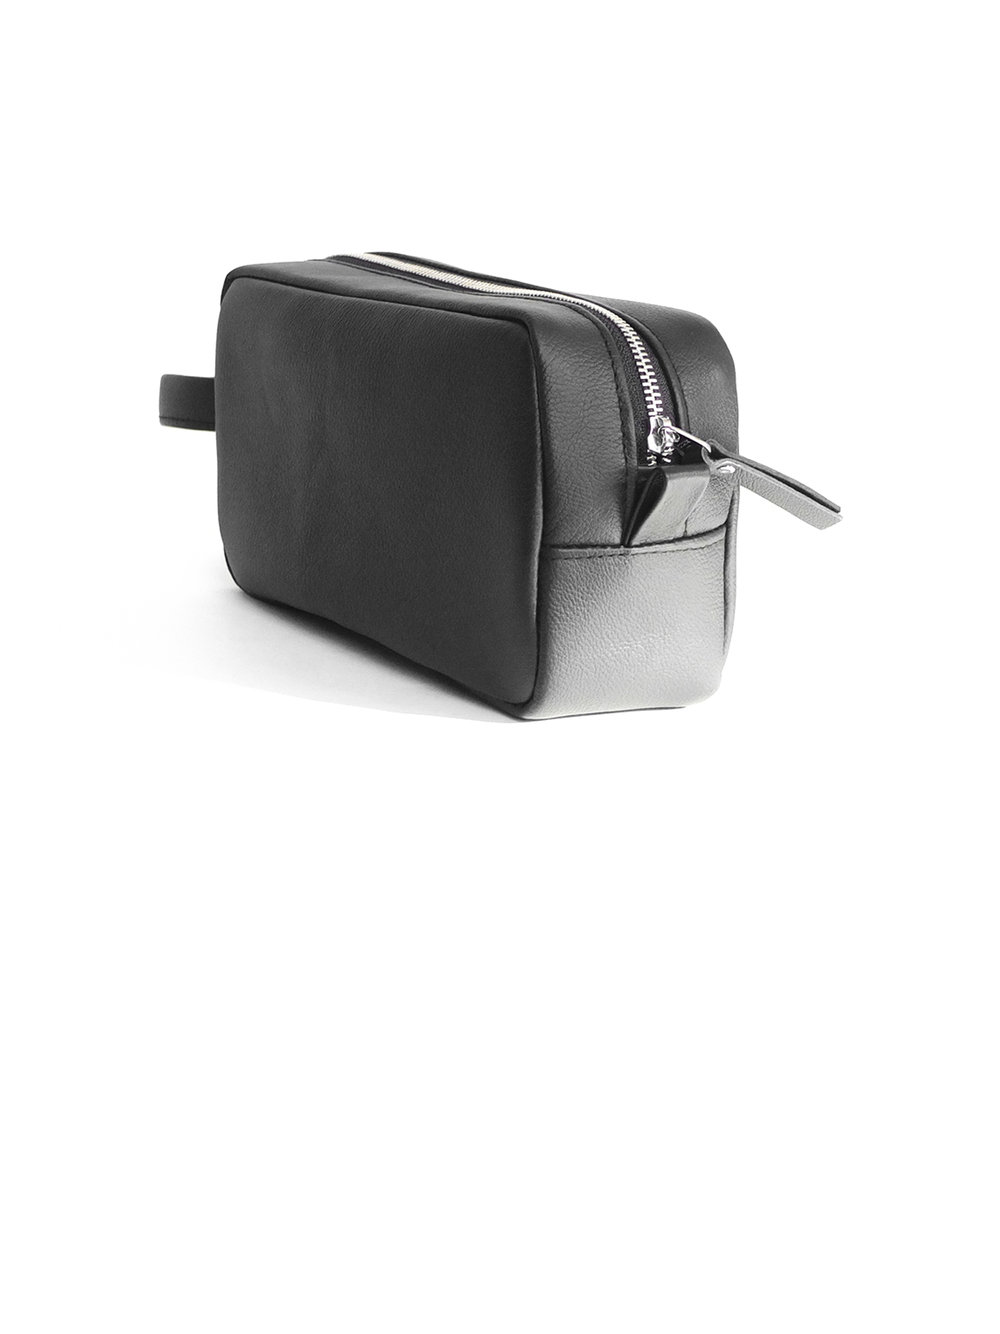 Leather dopp kit - 90.00$